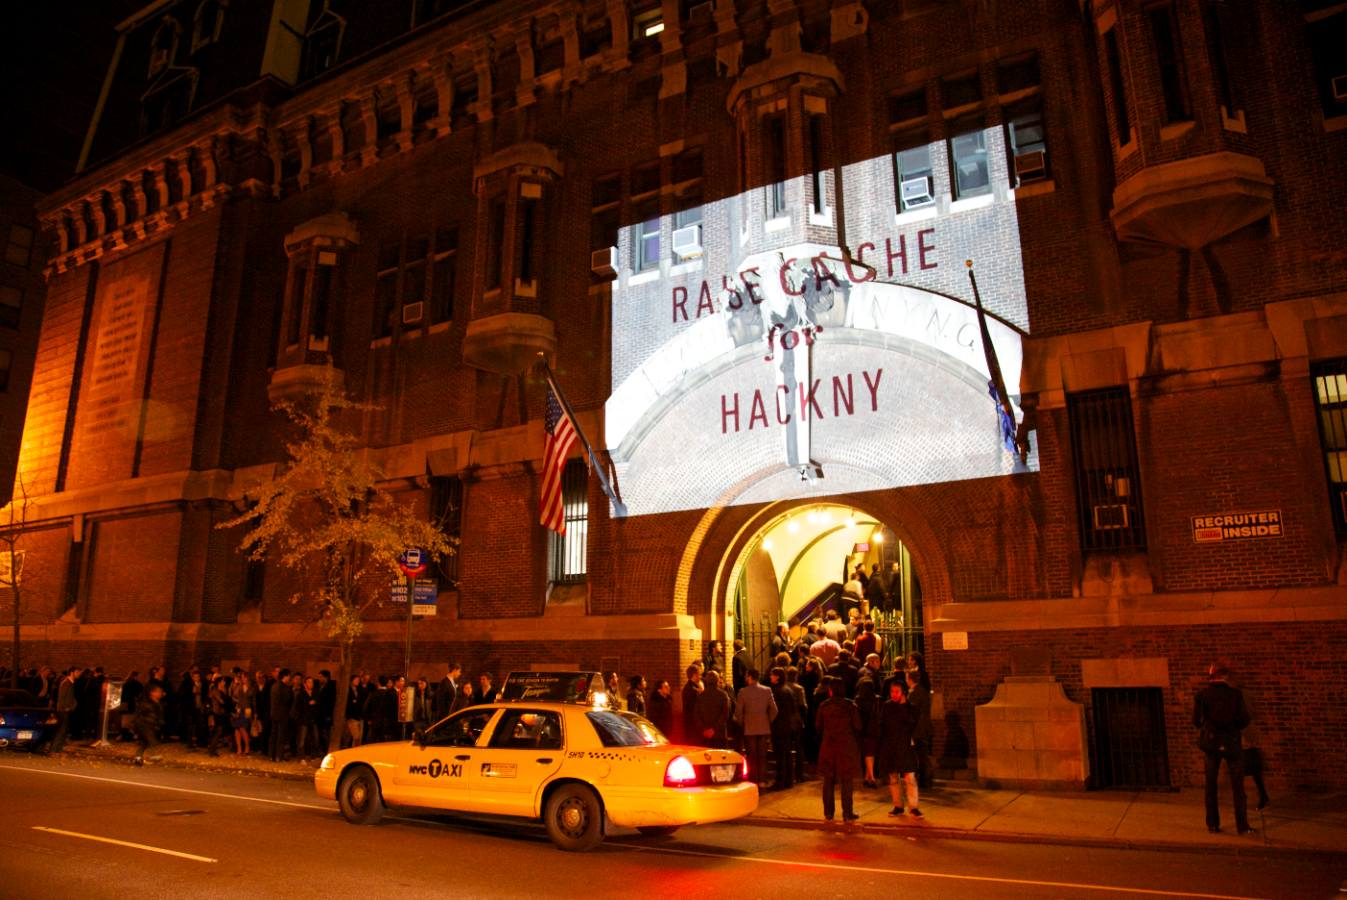 Raise Cache: One party in NYC raises over $100,000 for local hackers